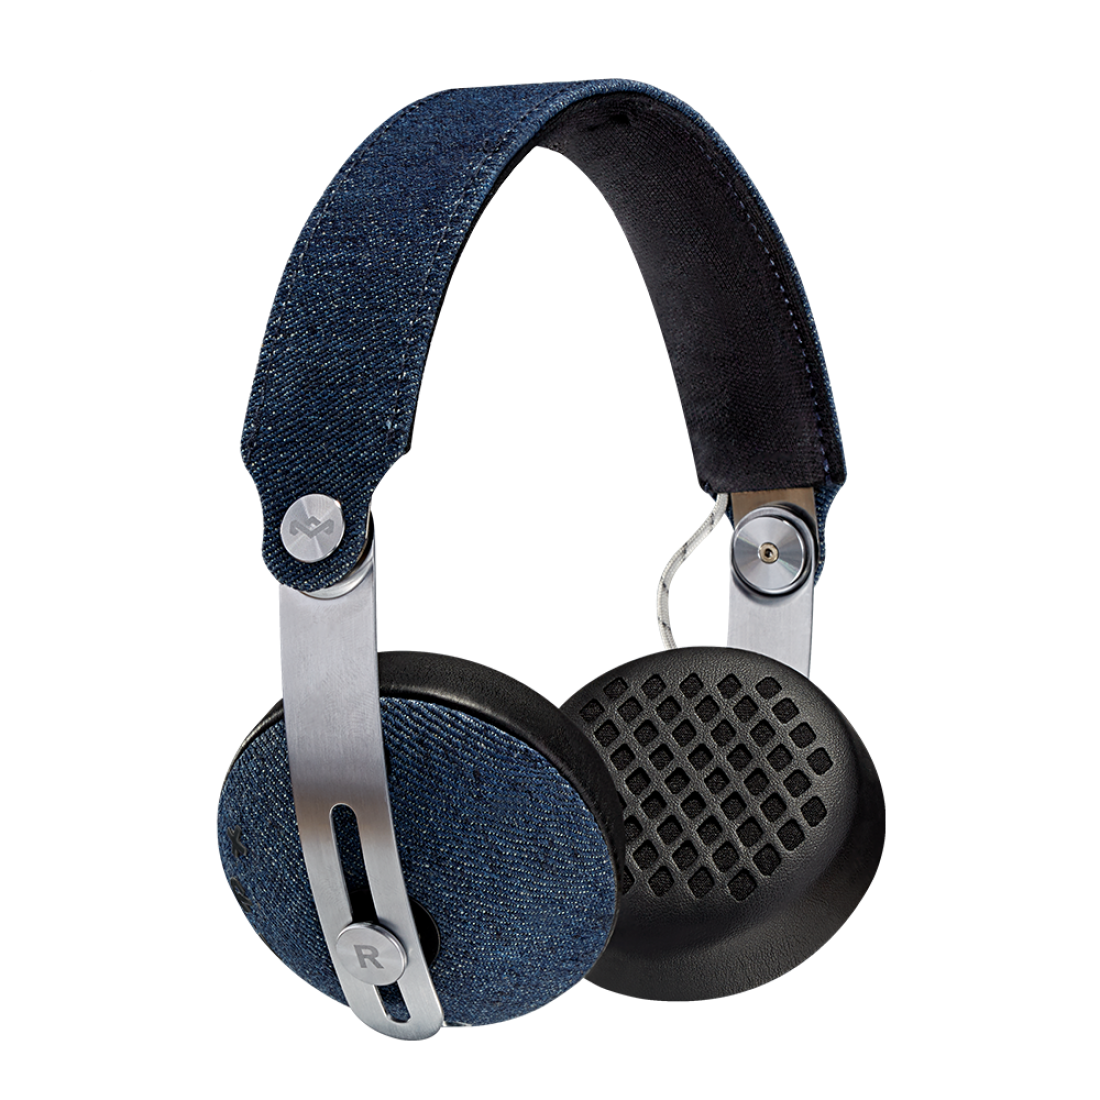 EM-JH111 Headphone Review